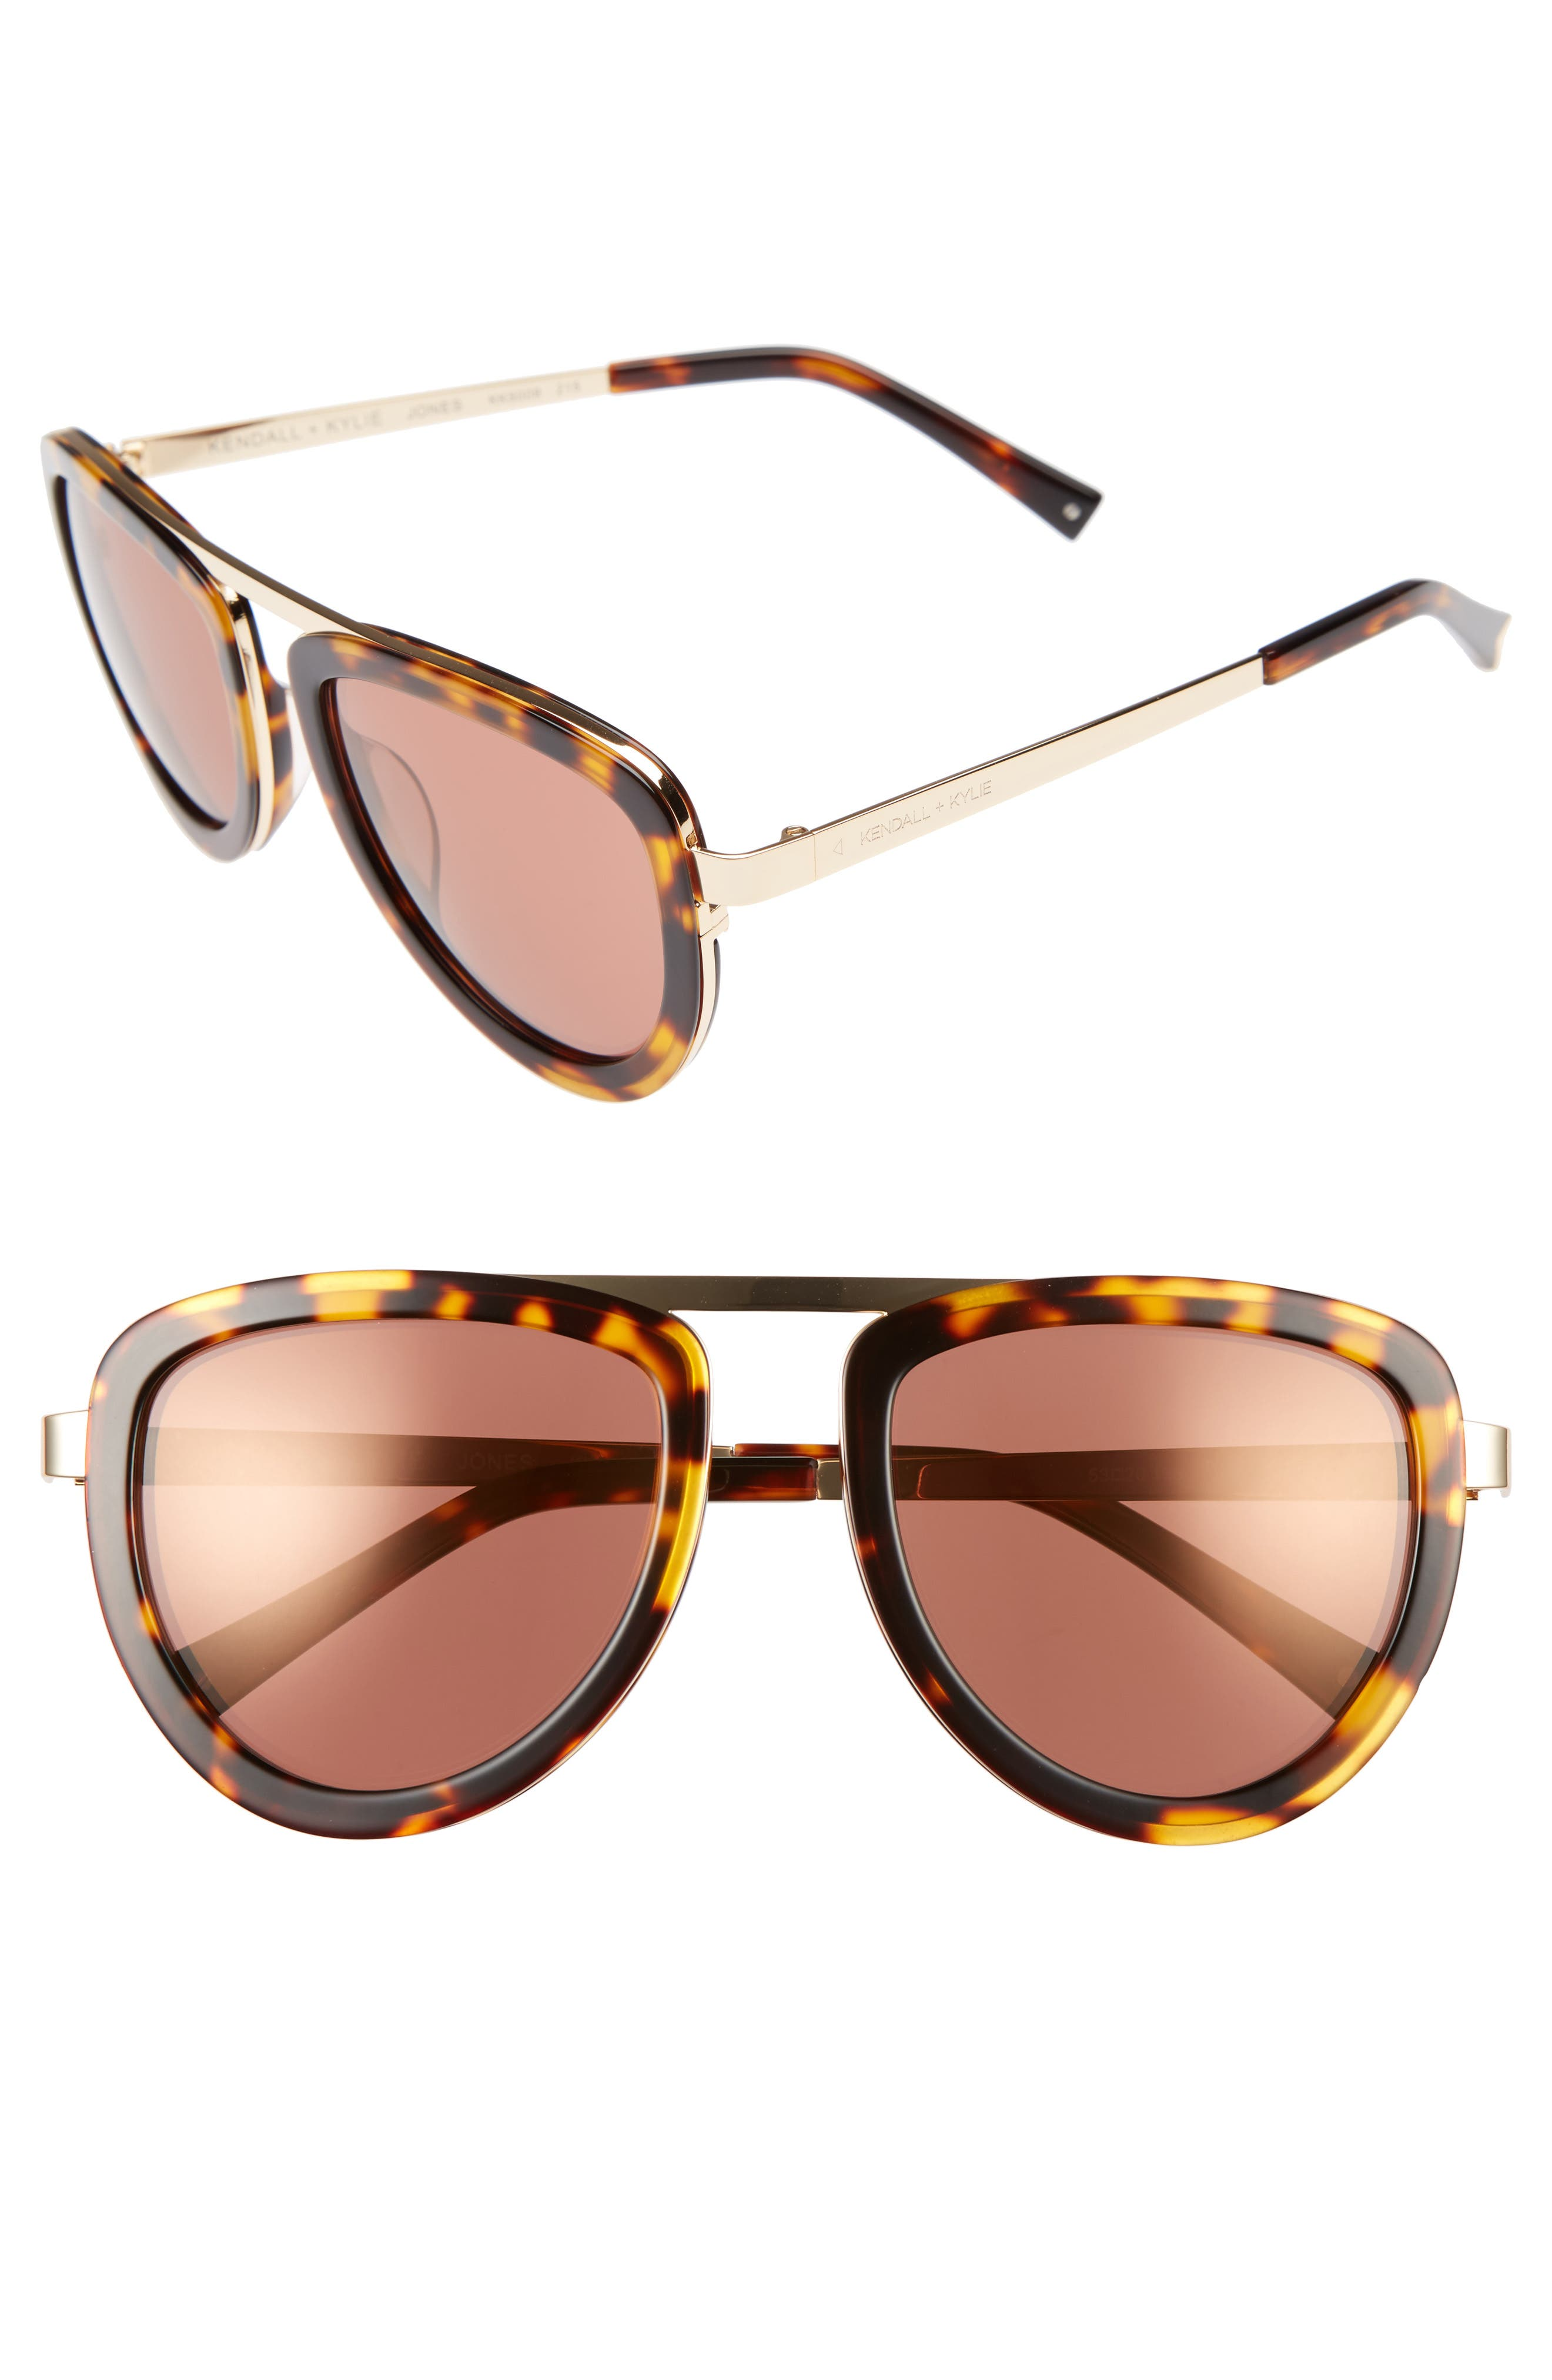 Main Image - KENDALL + KYLIE 53mm Aviator Sunglasses